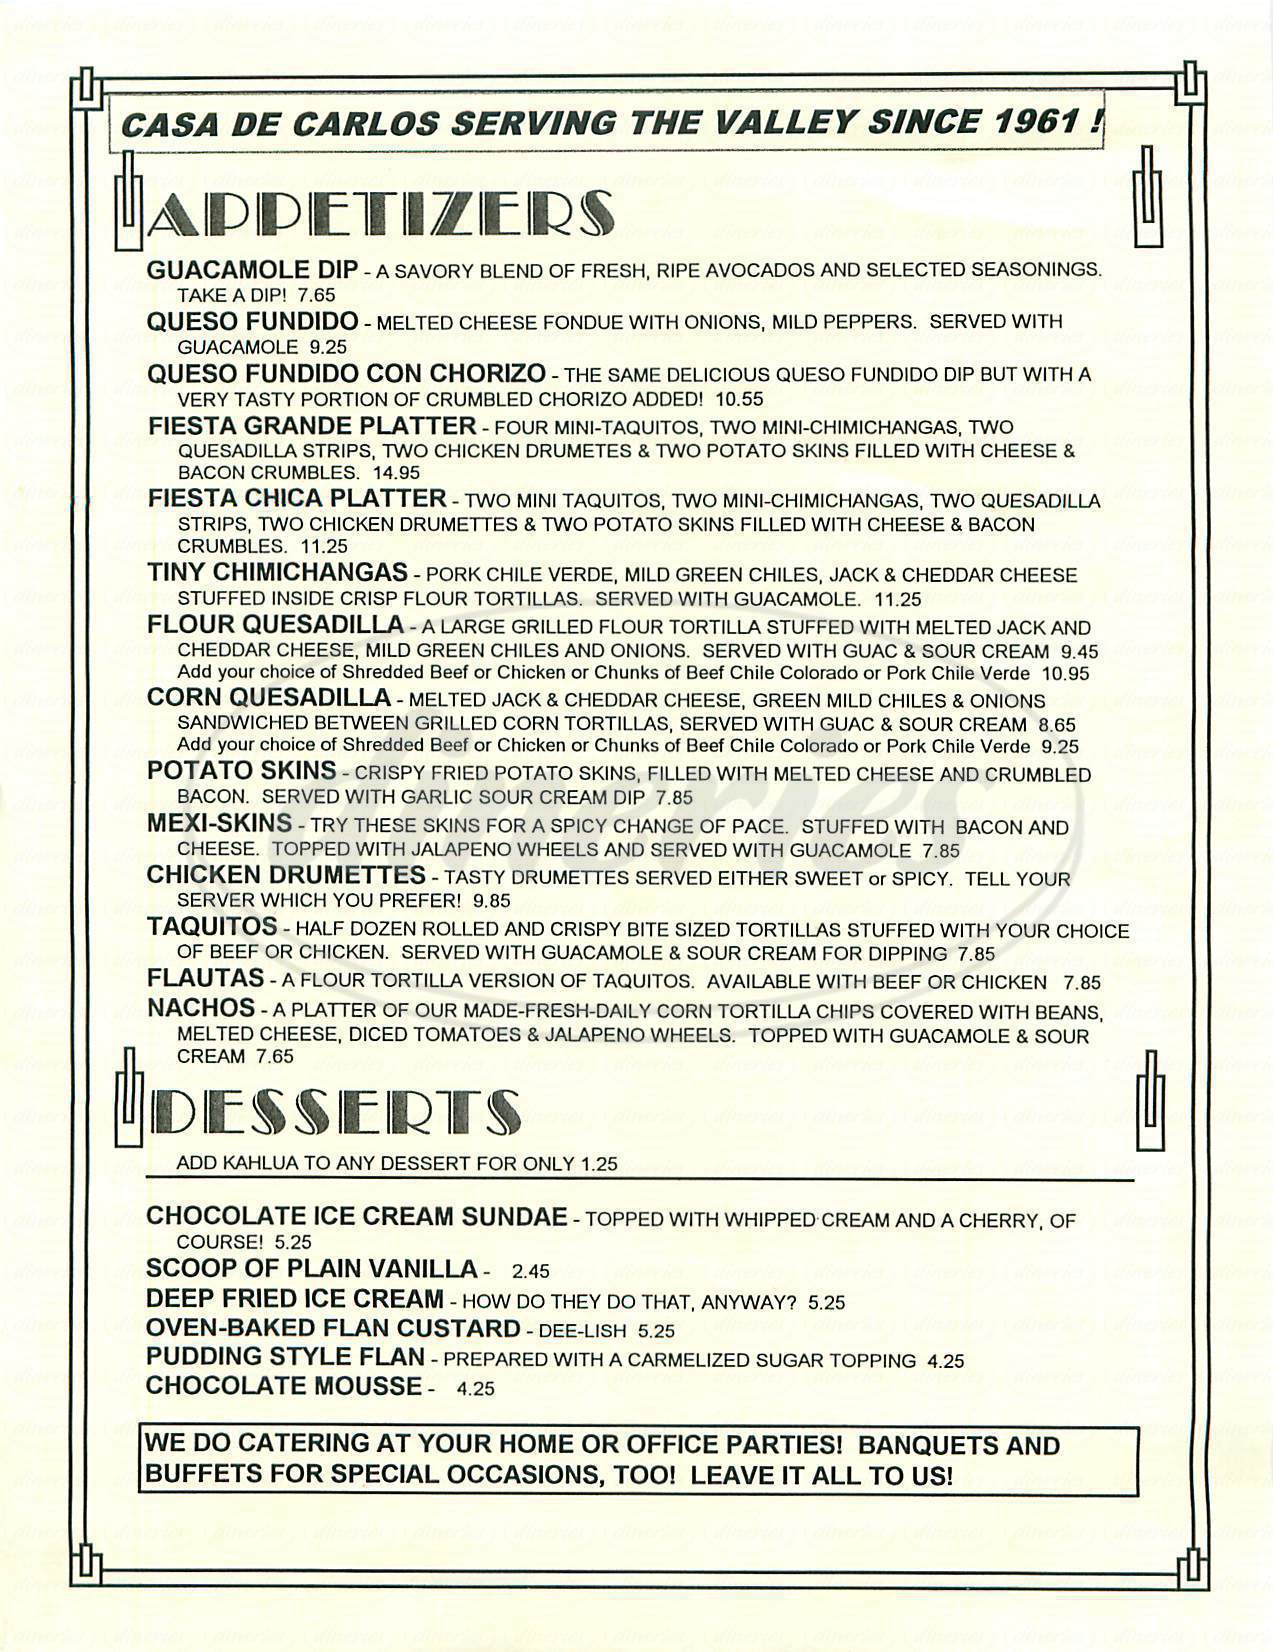 menu for Casa de Carlos Restaurant